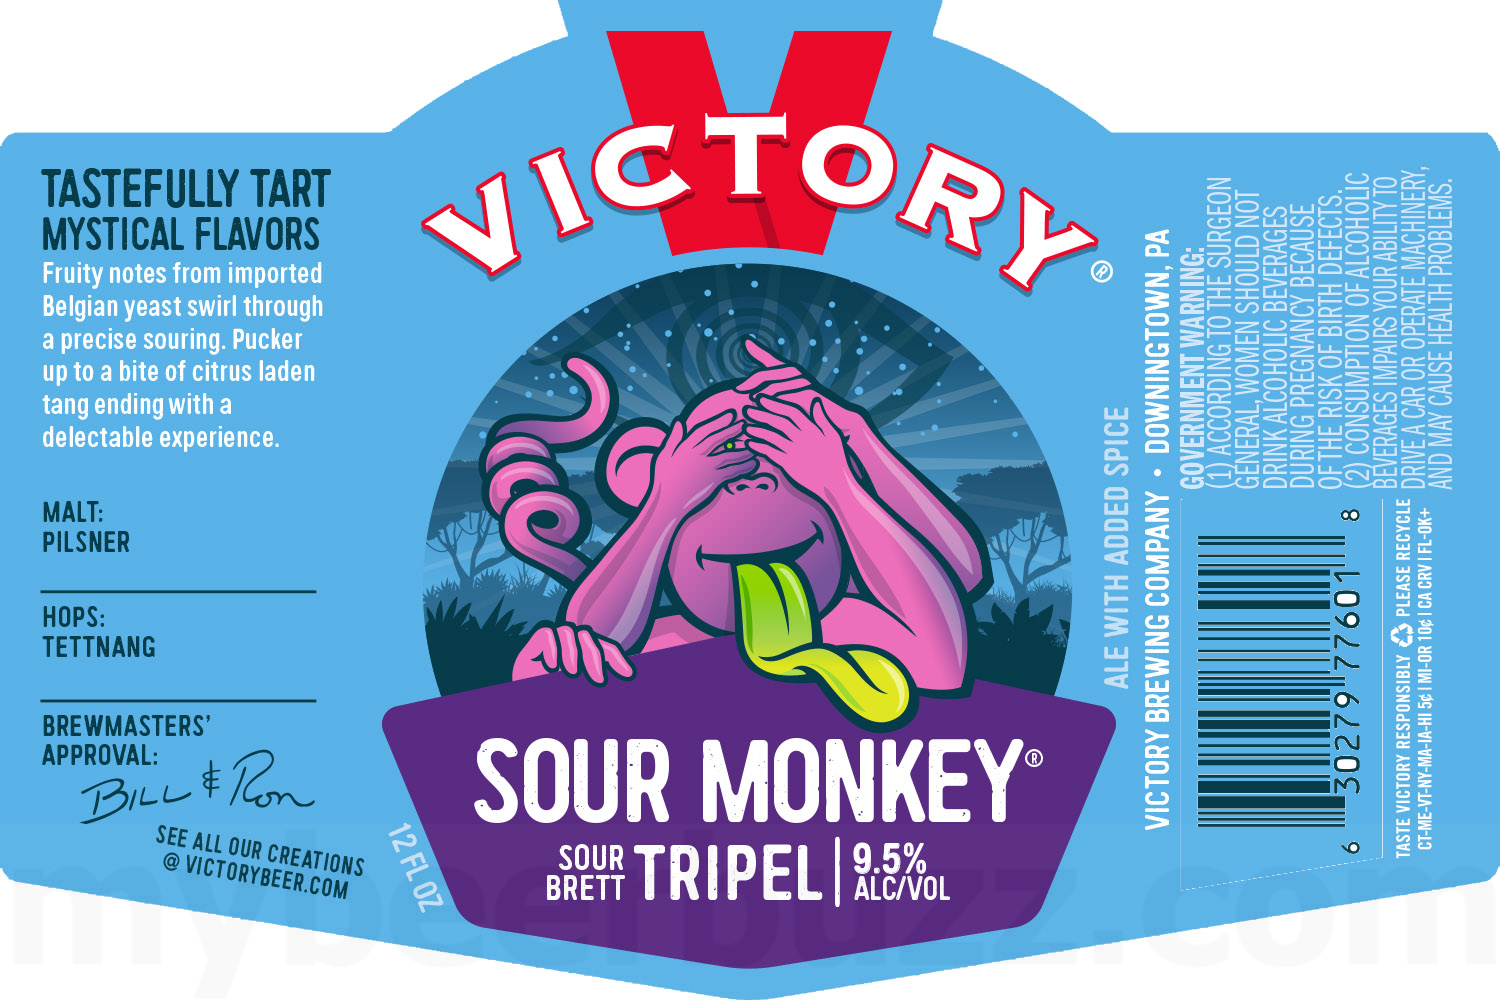 Victory Updating Summer Of Love, Sour Monkey & Home Grown Packaging